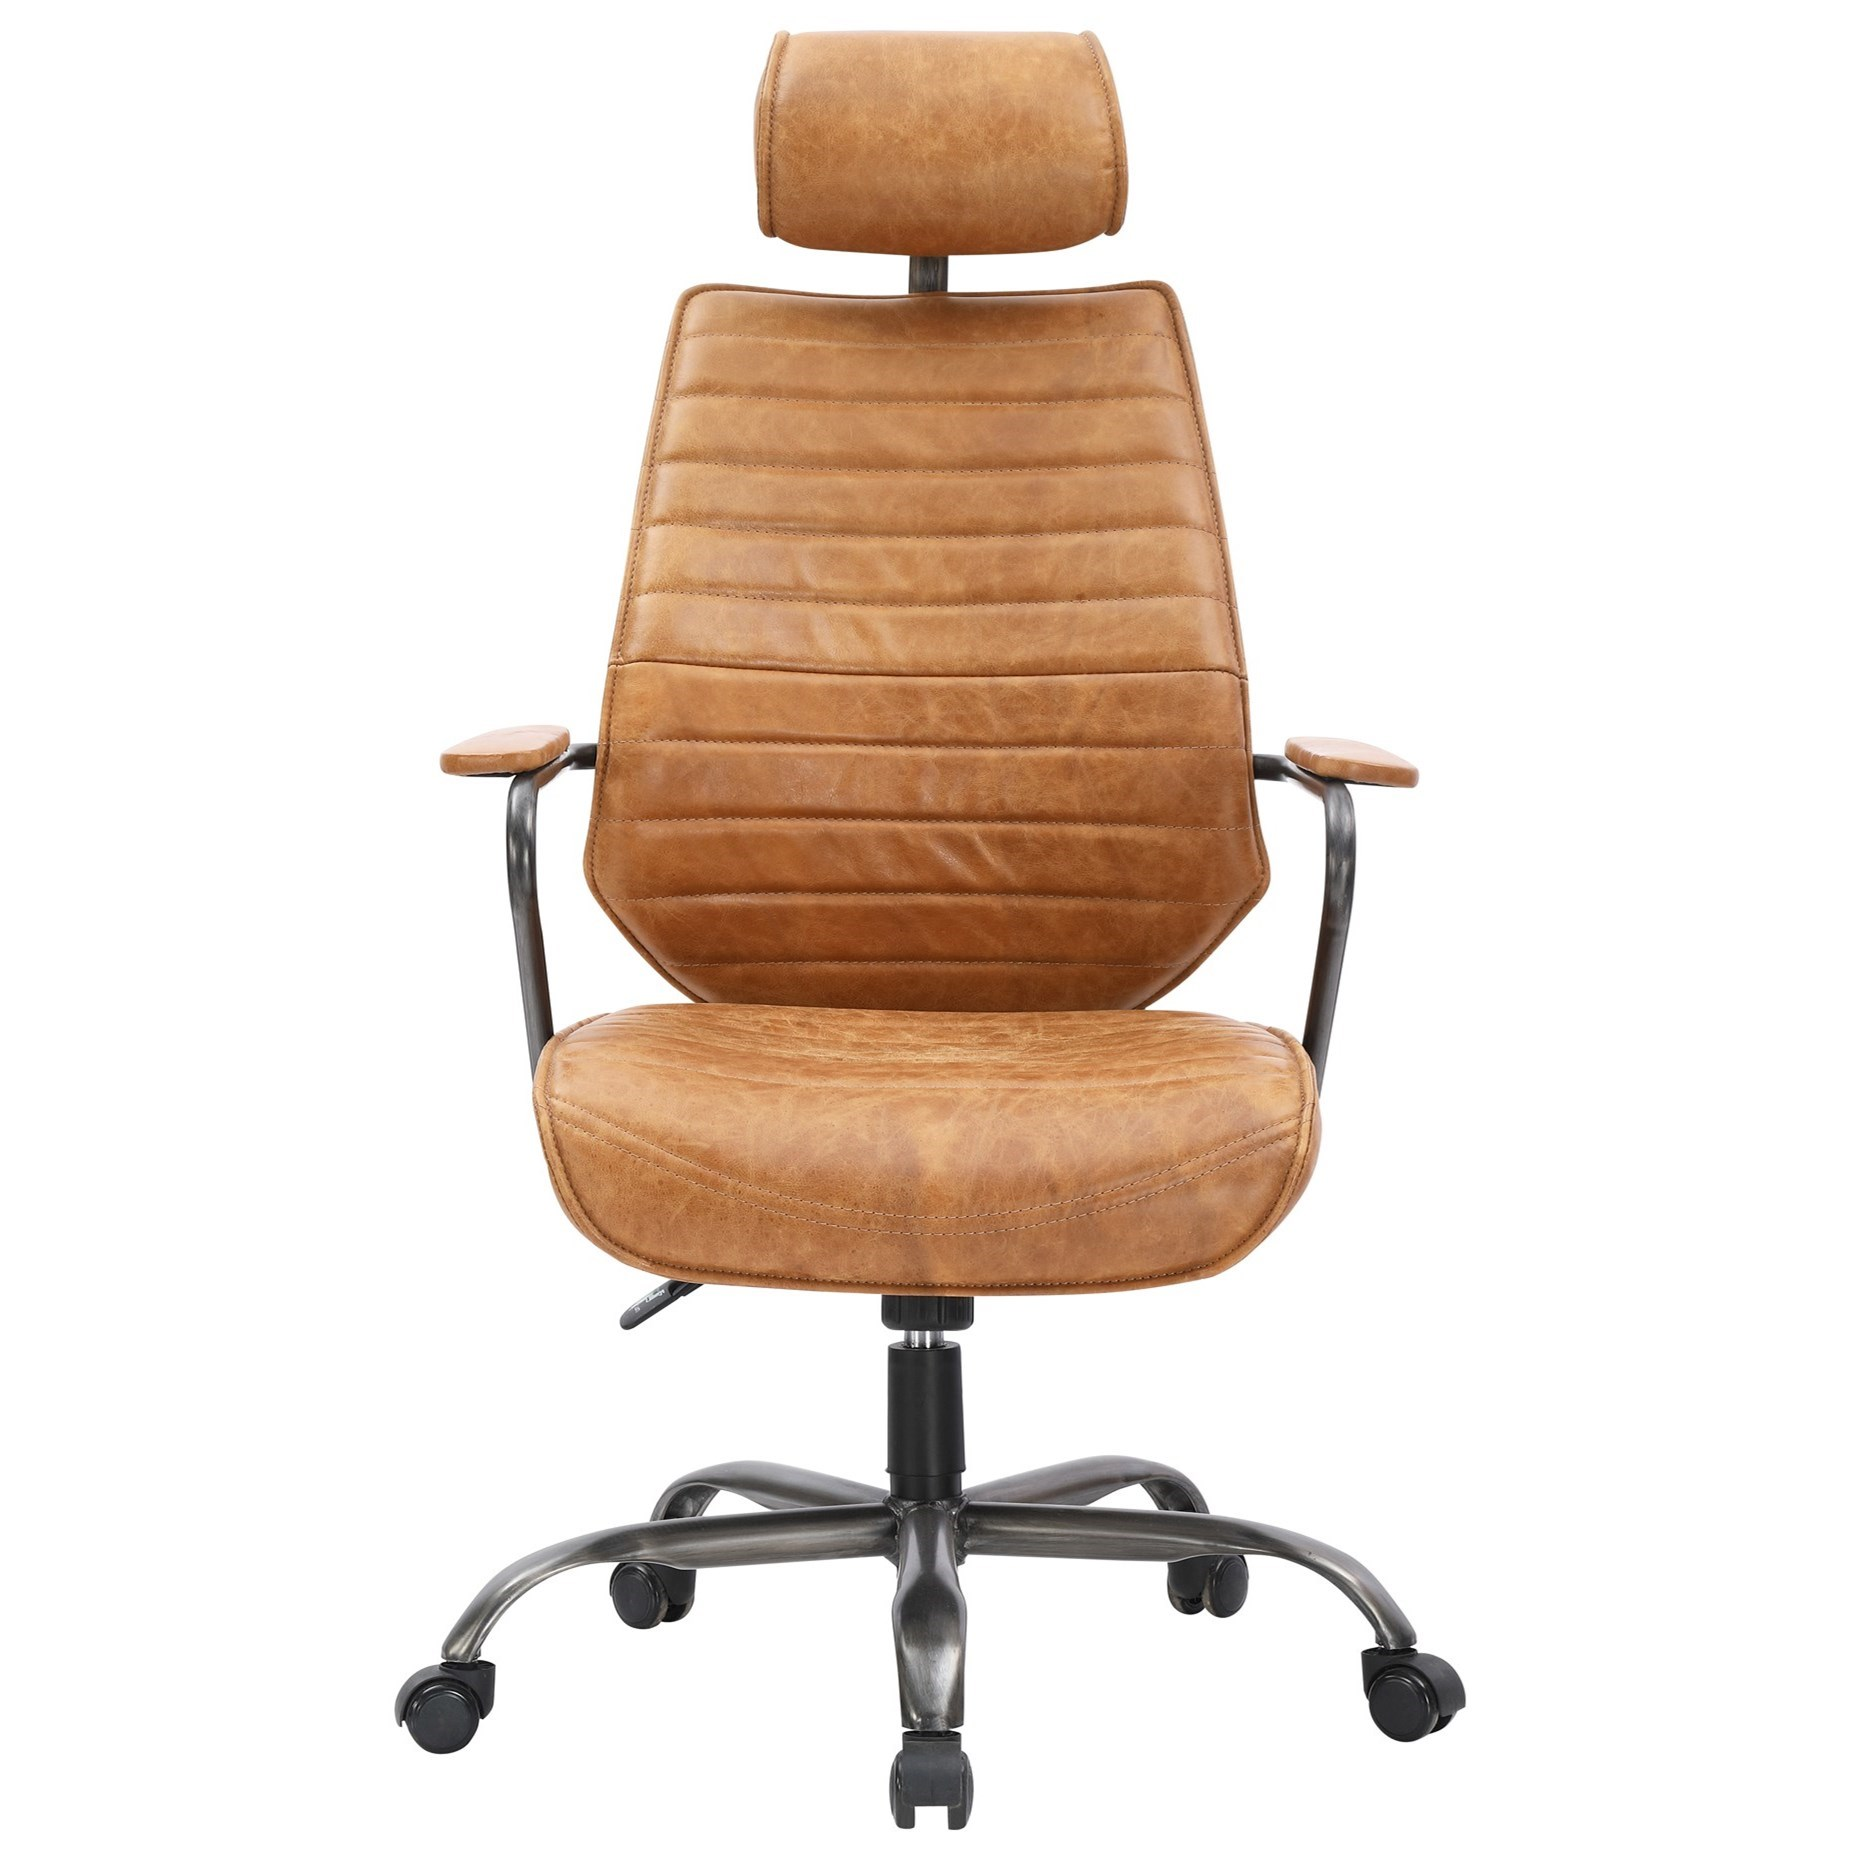 Moe's Home Collection Executive Contemporary Office Chair